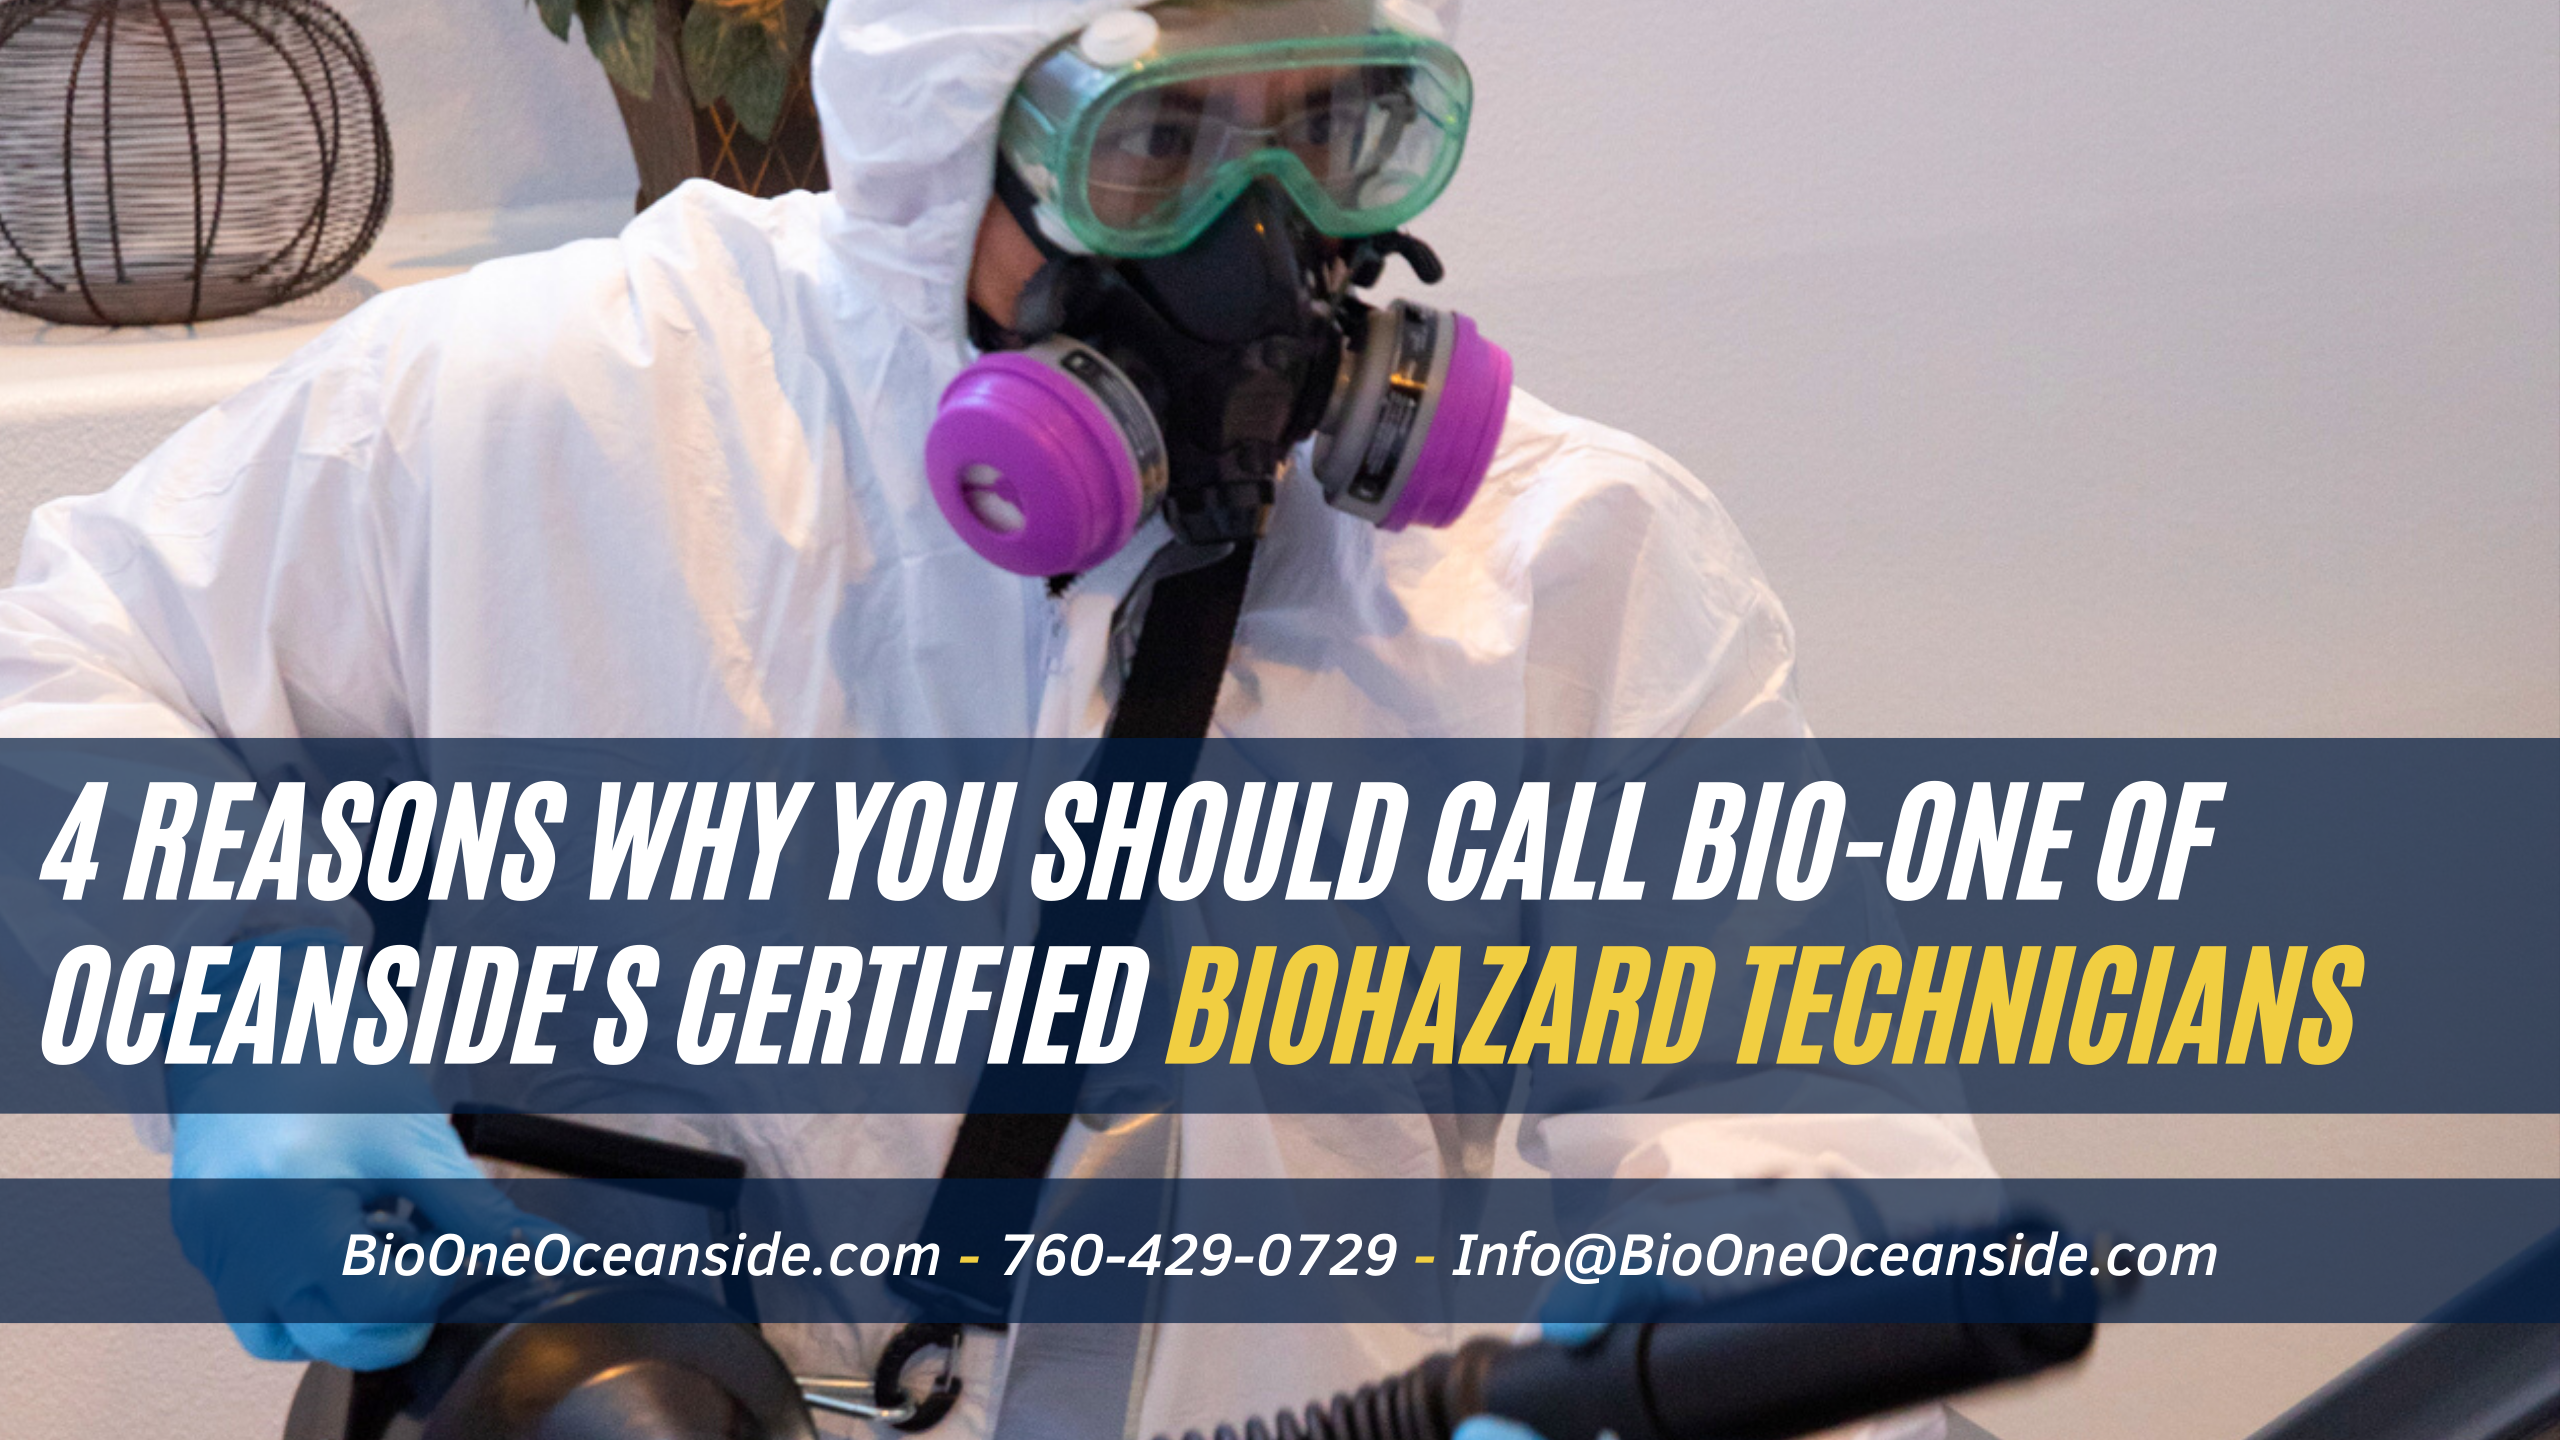 4 reasons why you should call Bio-One of Oceanside's certified Biohazard technicians